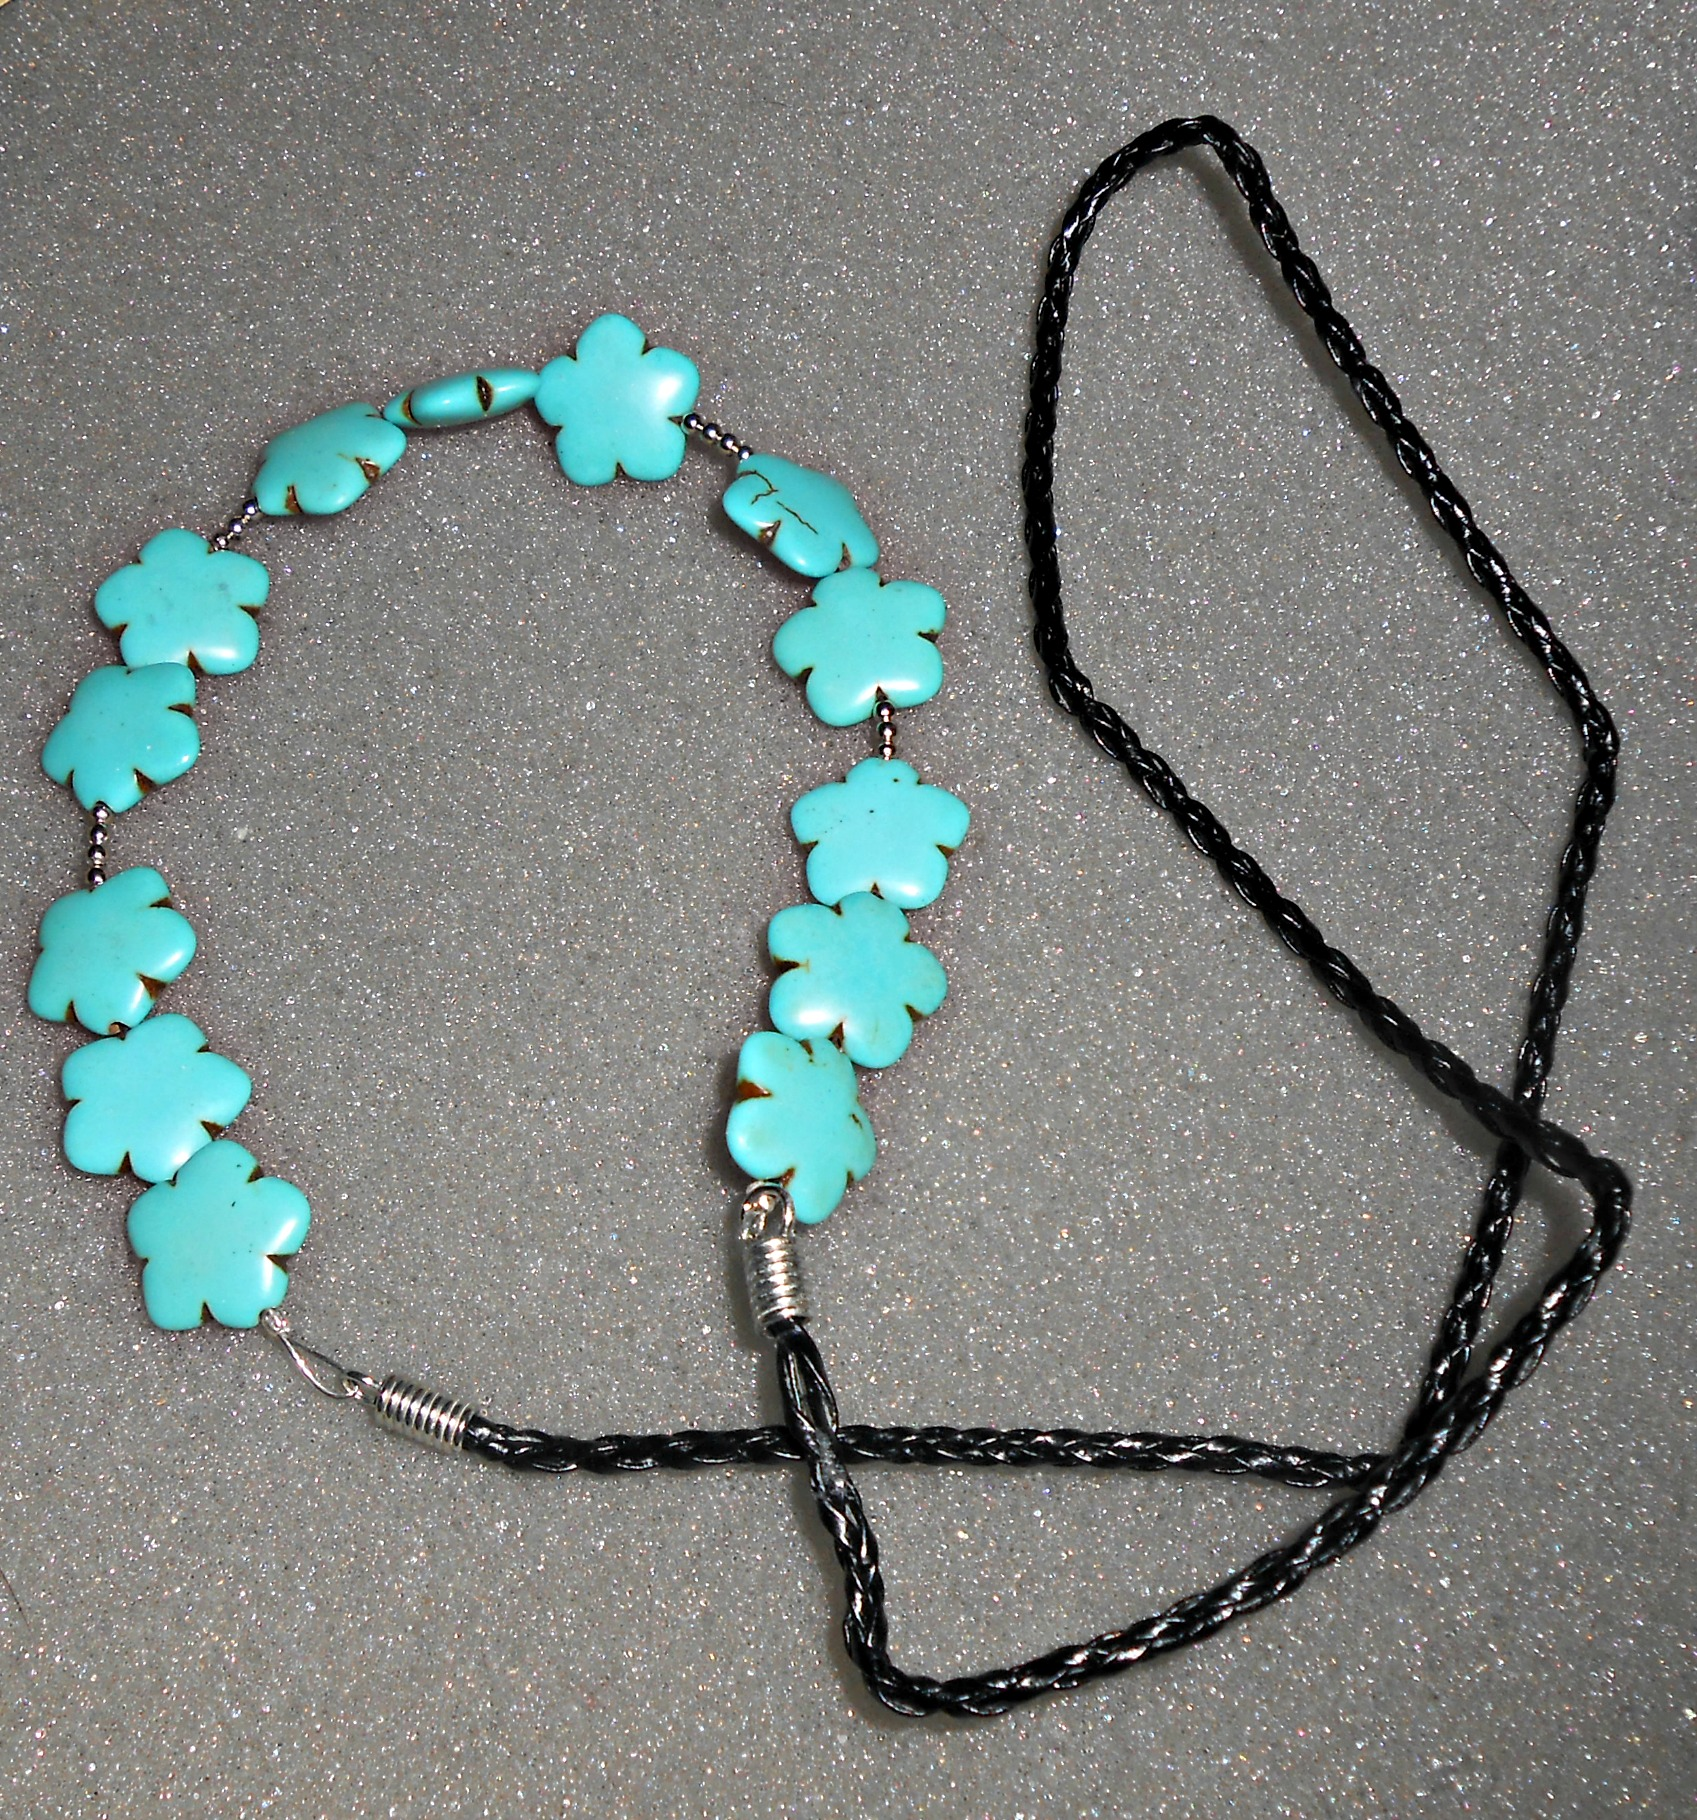 Diy turquoise statement necklace tutorial 6